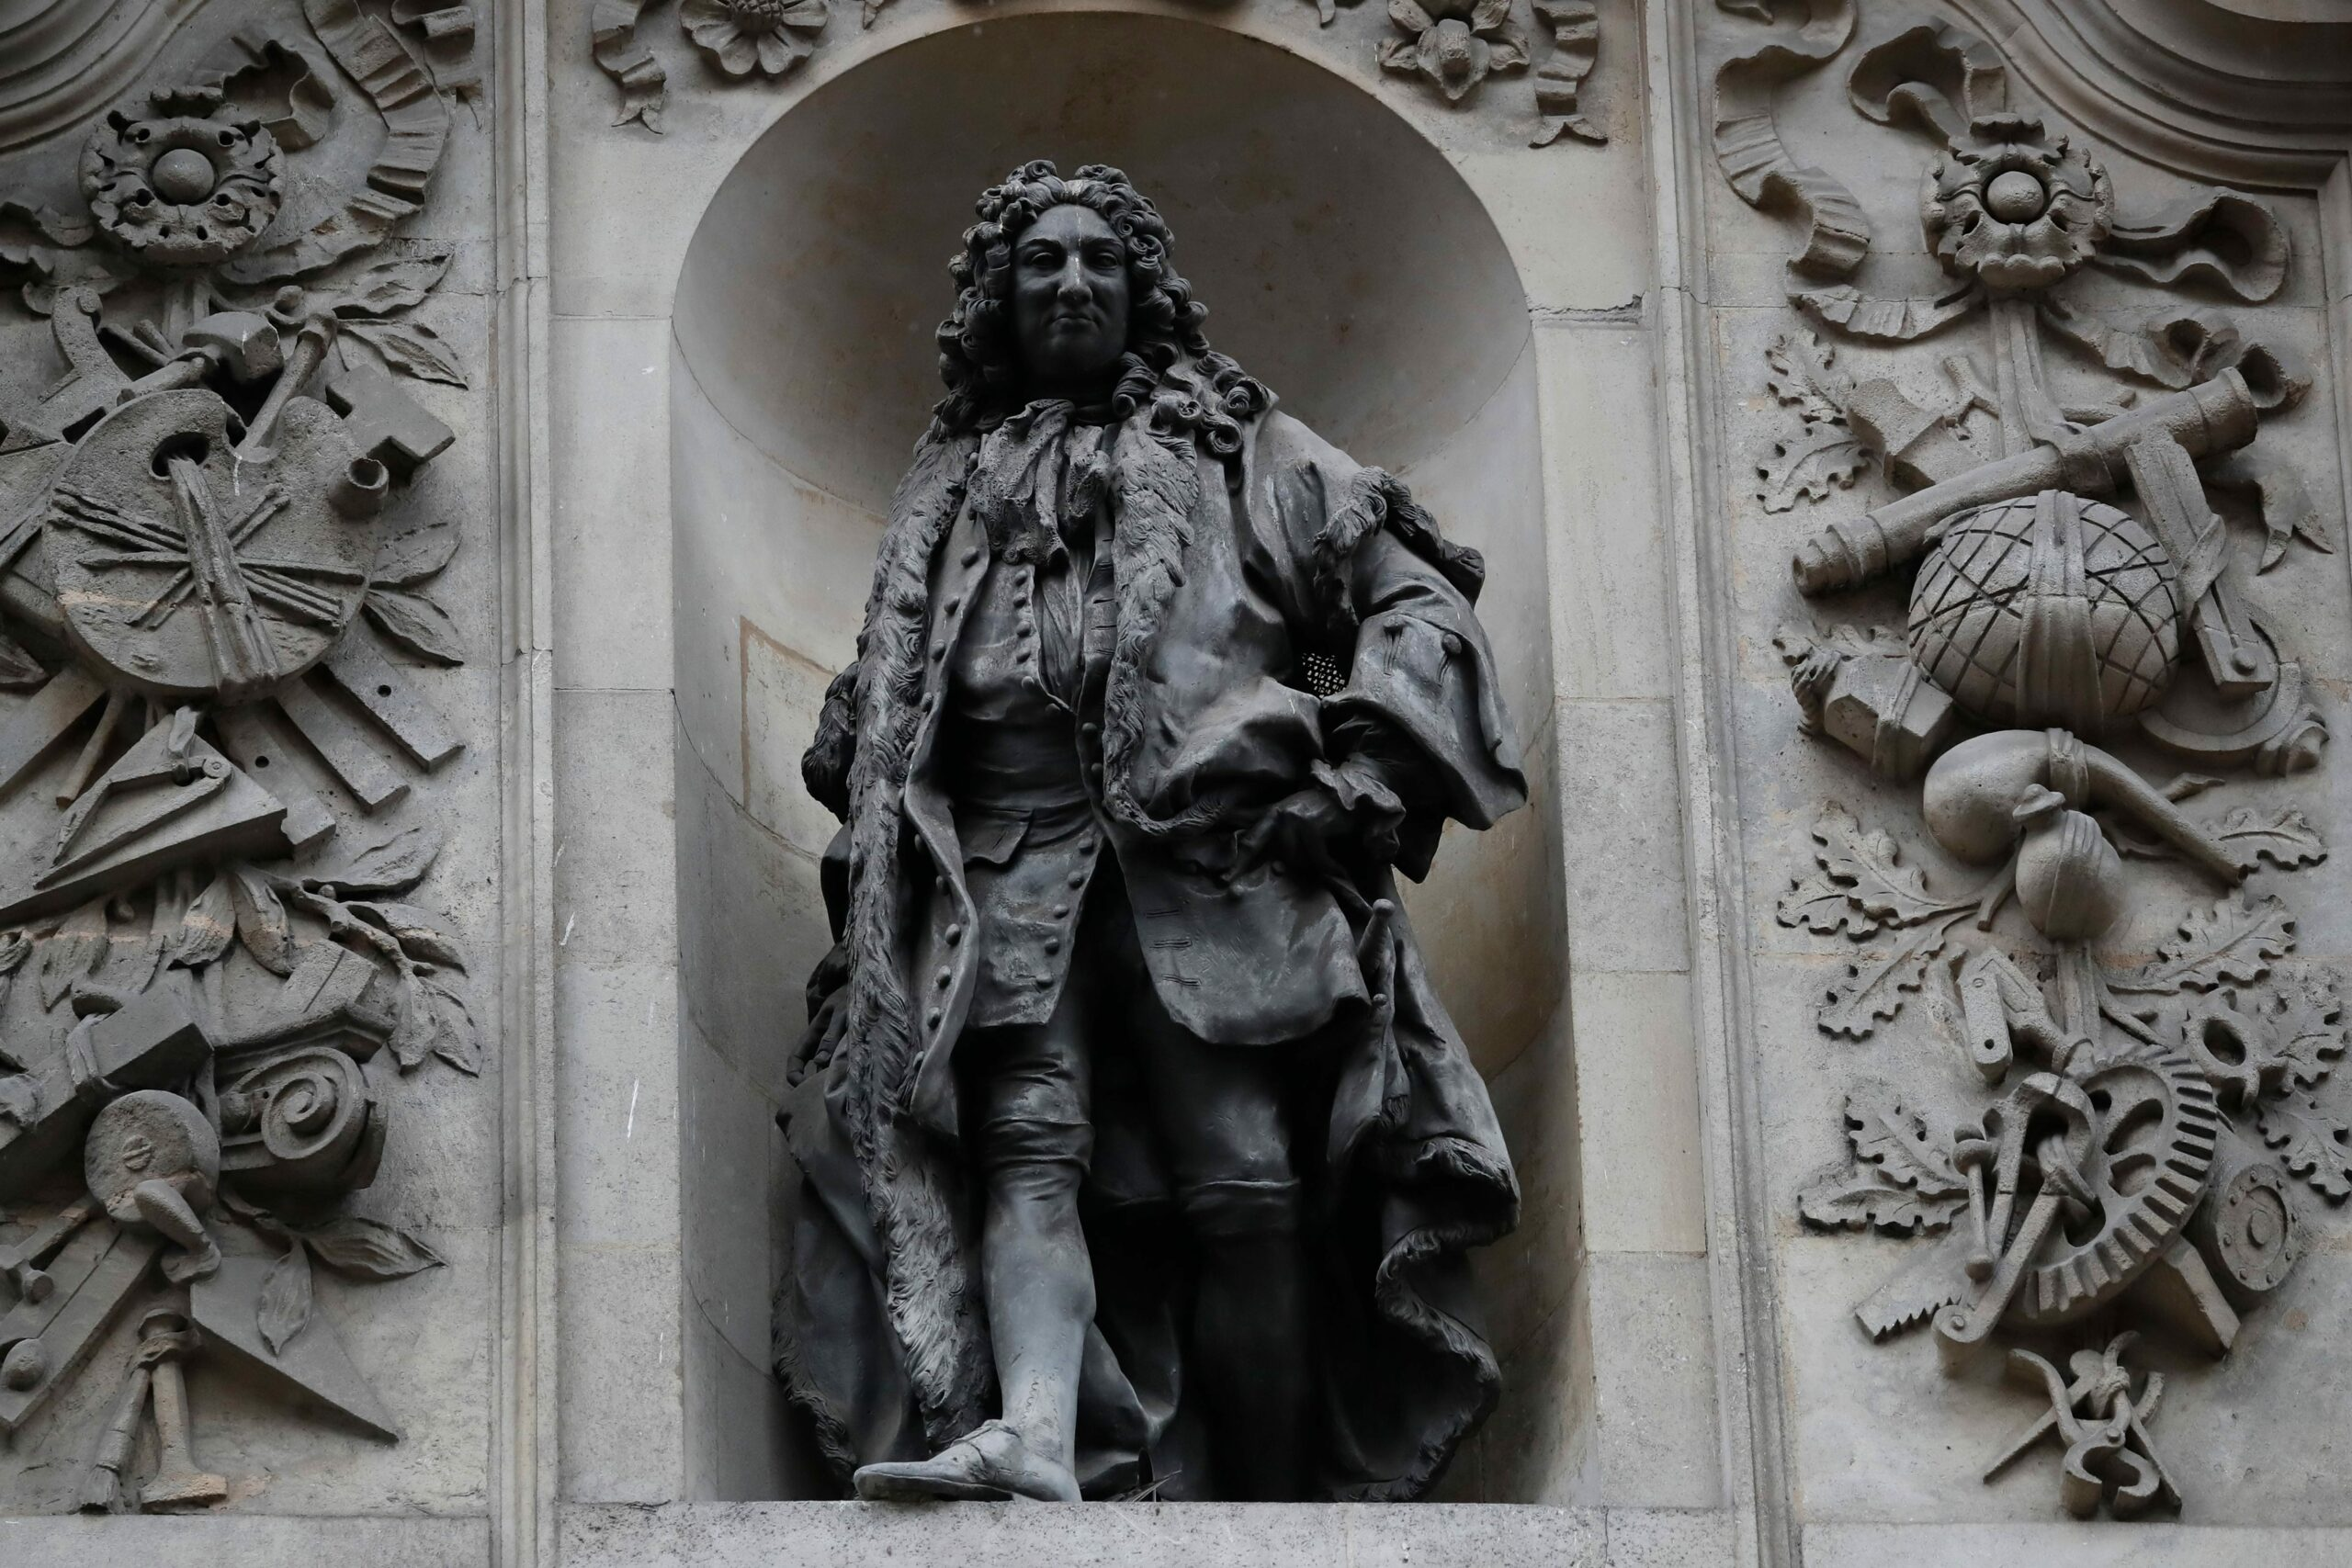 The City of London Won't Remove Its Slave Trade-Linked Statues After All